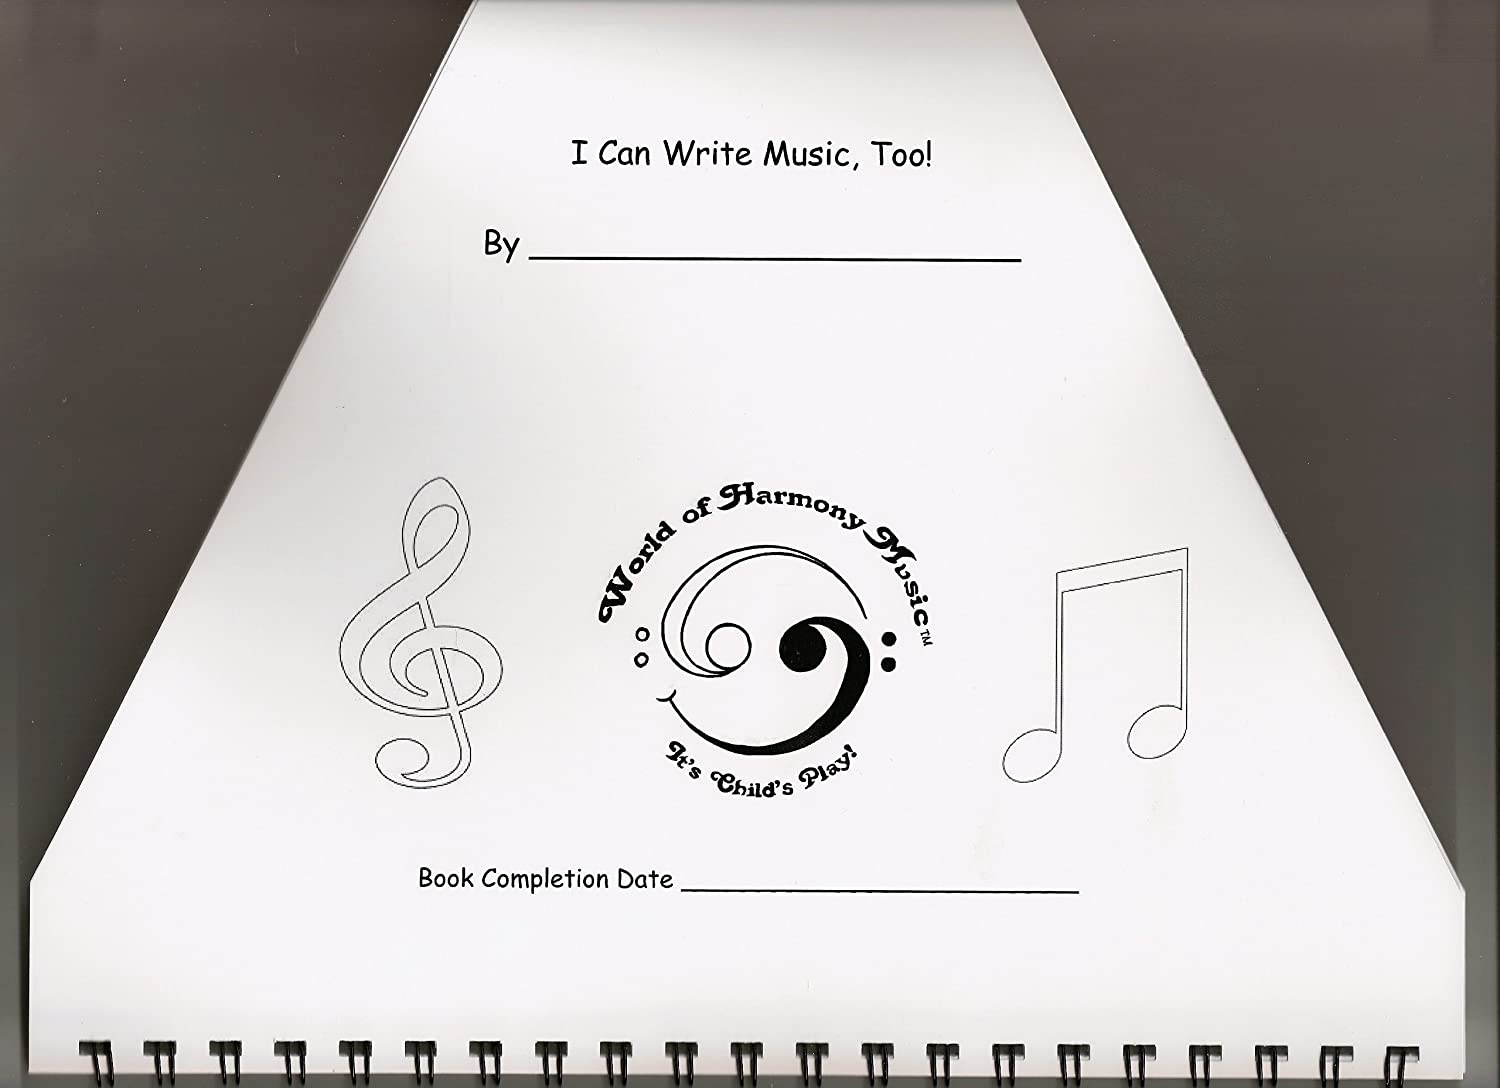 World of Harmony Music; I Can Write Music, Too! ~ Create Your Own Music Book for Zither, Lap Harp